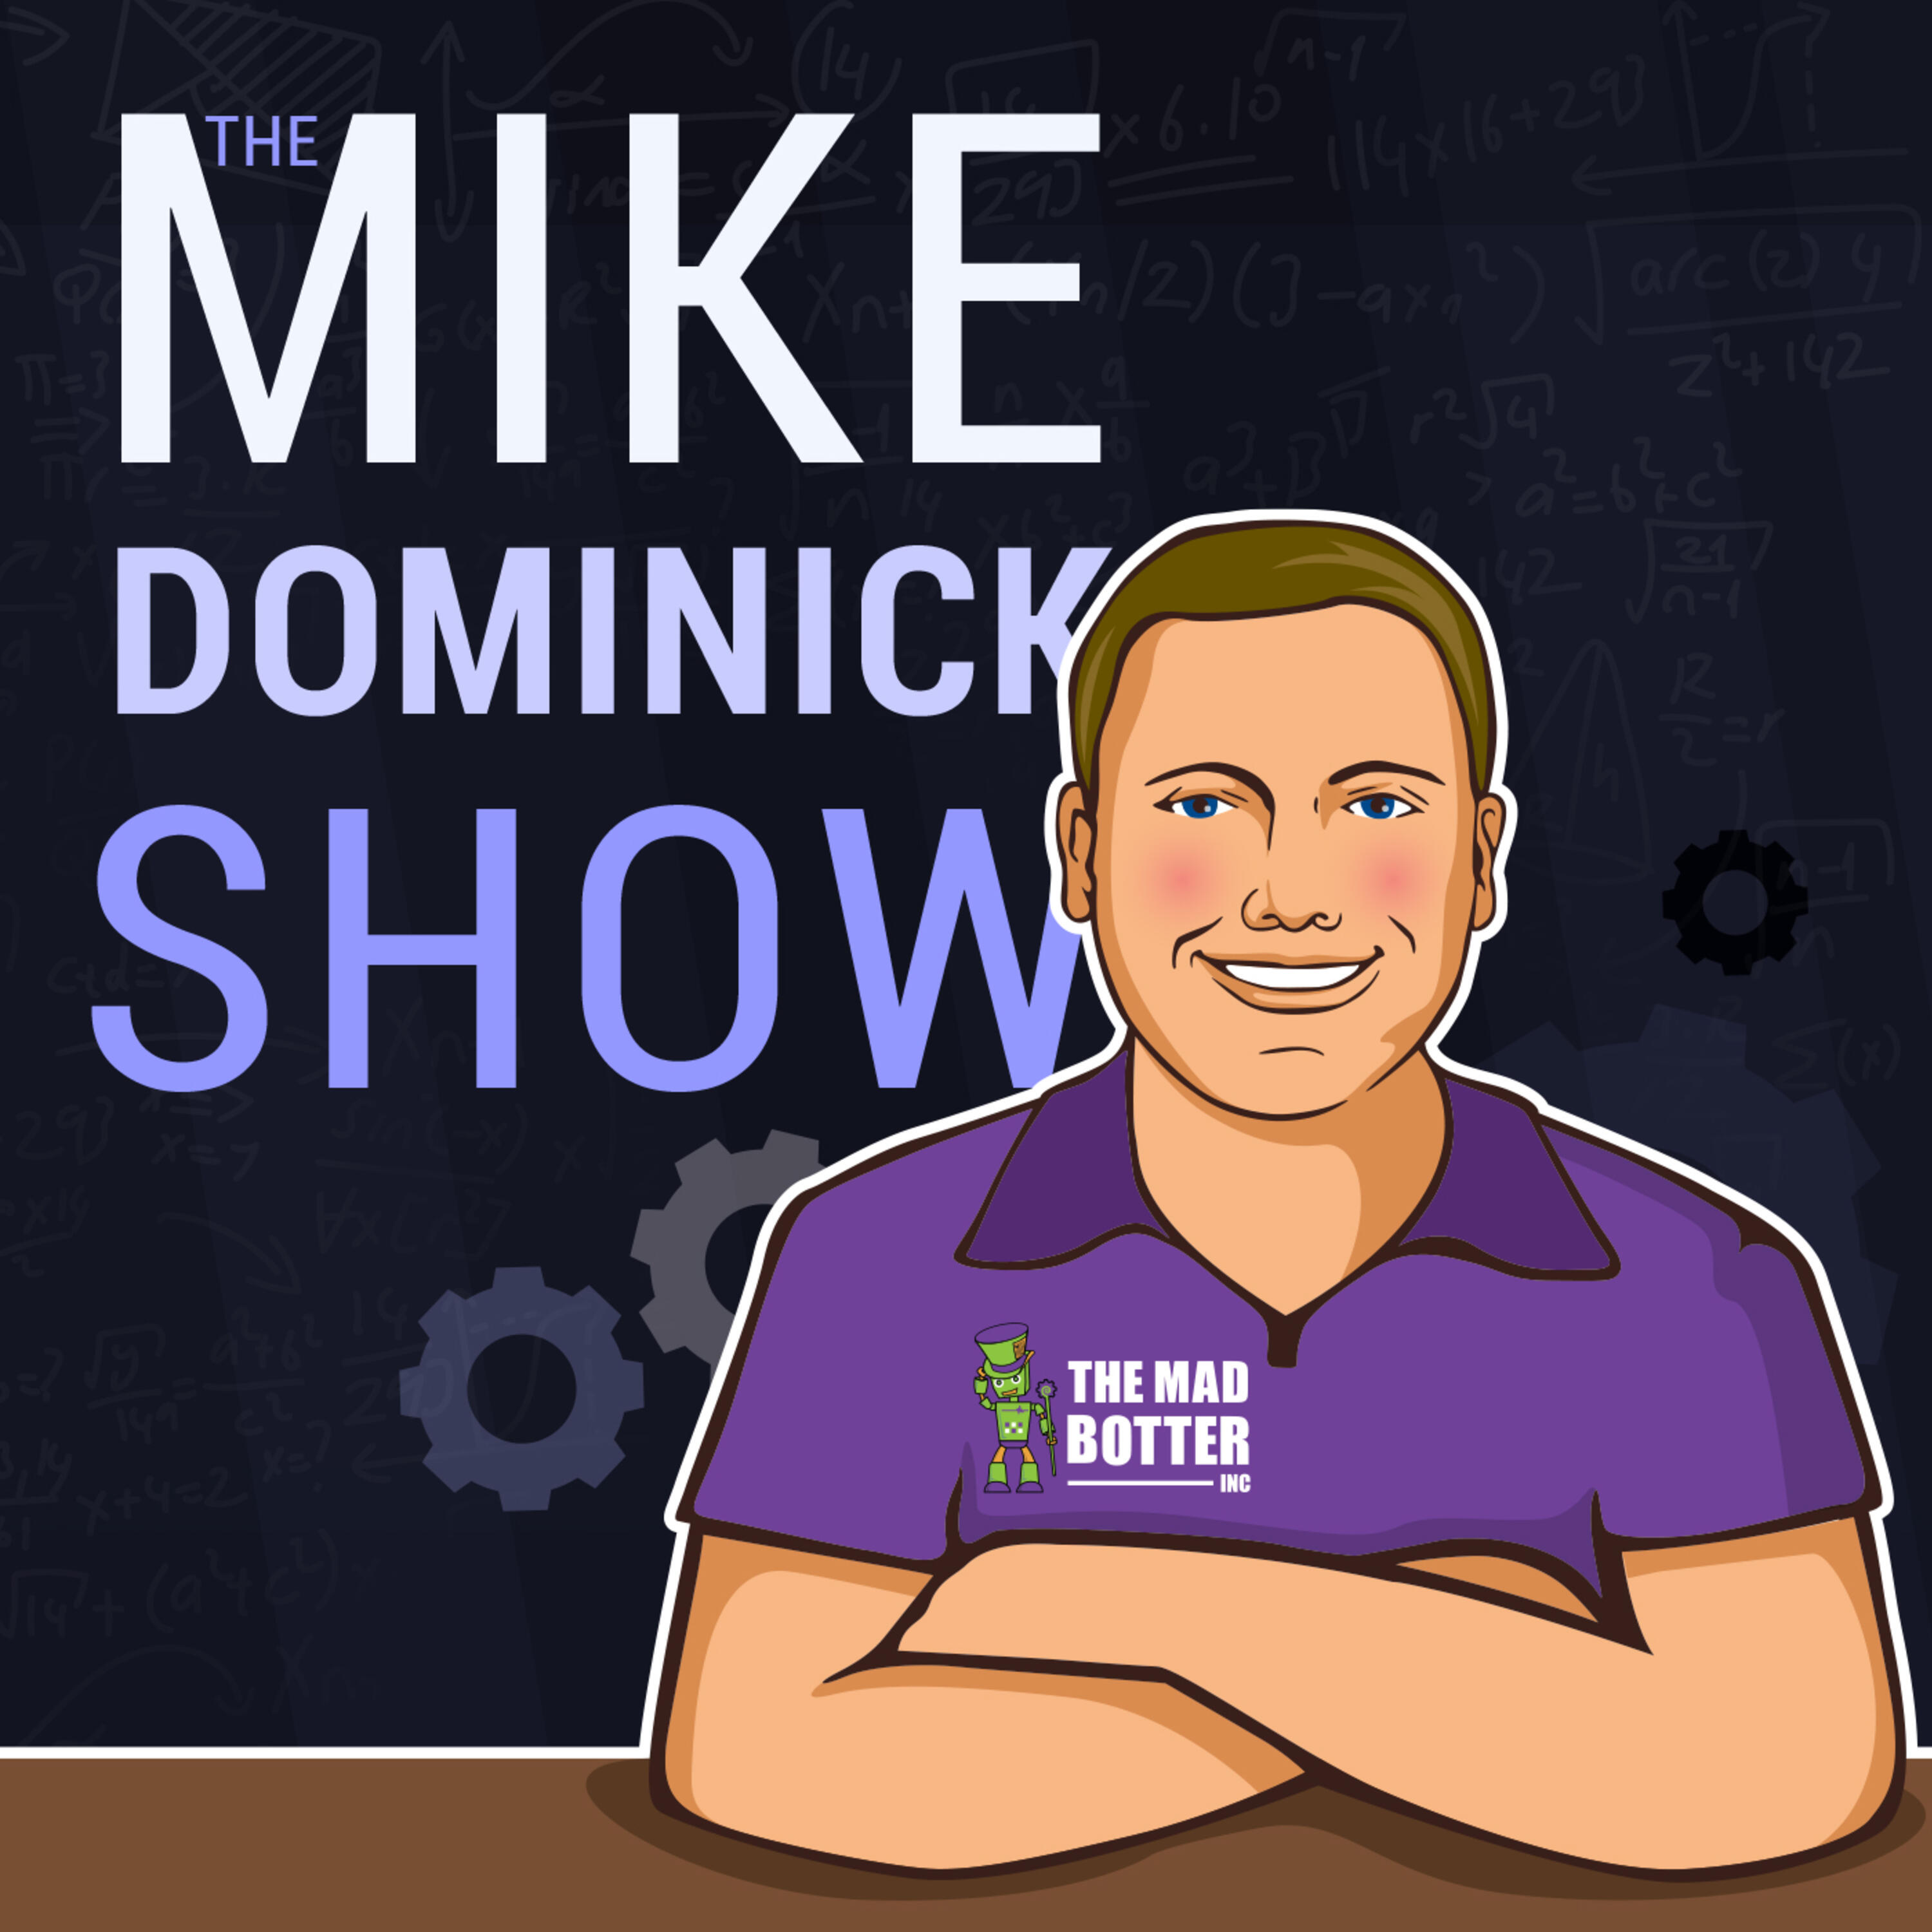 The Mike Dominick Show